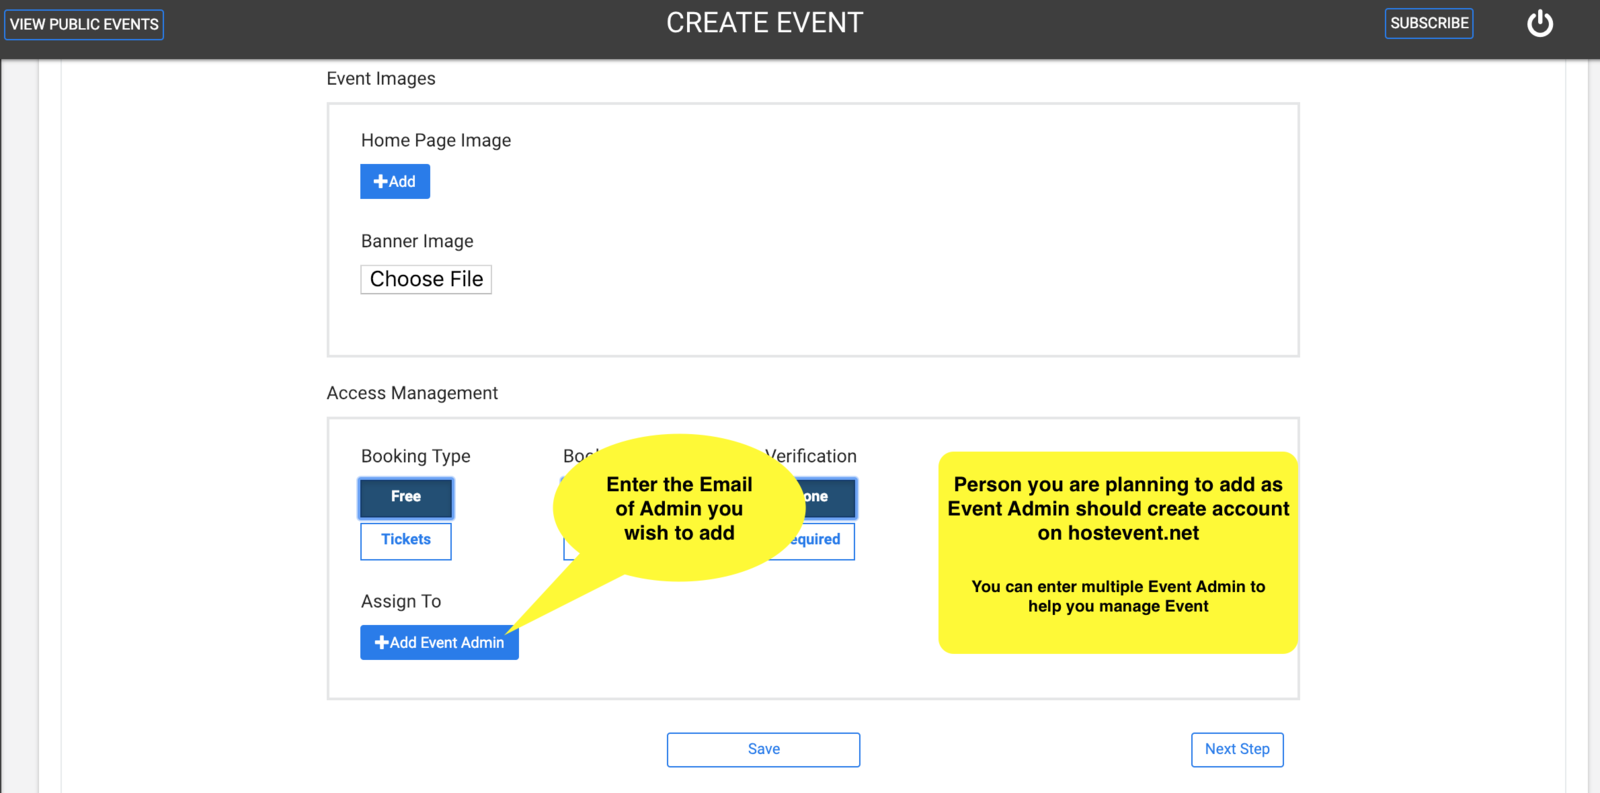 Add Event Admin to manage your event